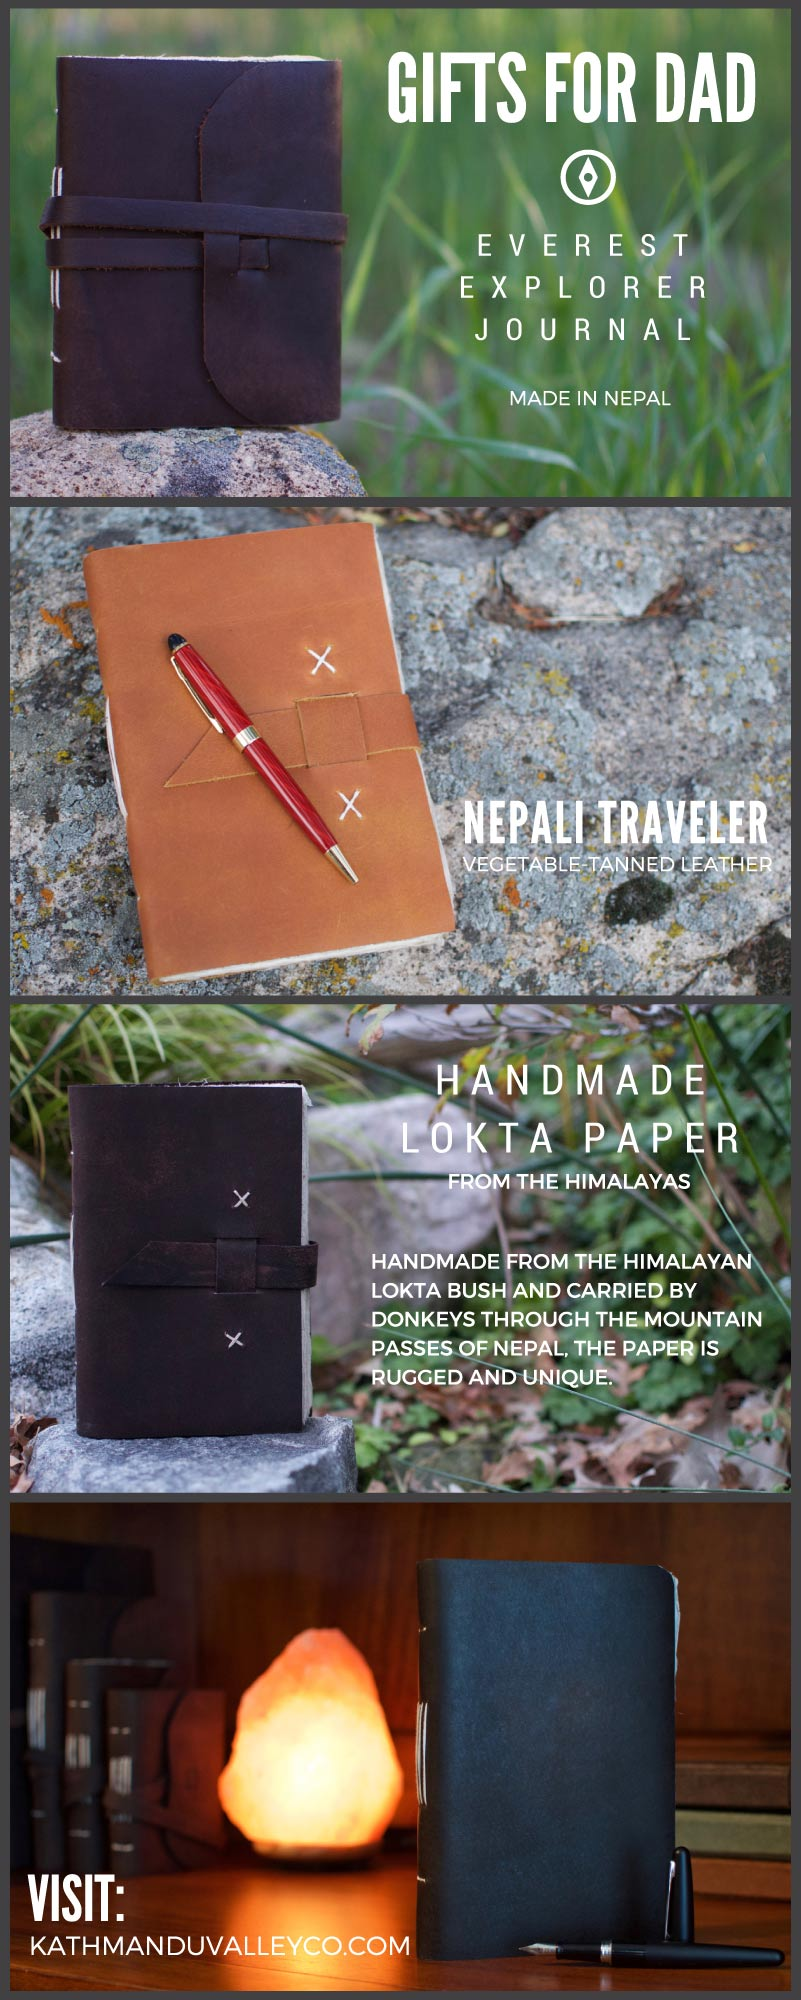 Vintage Leather Journals Gift Ideas - Kathmandu Valley Co.